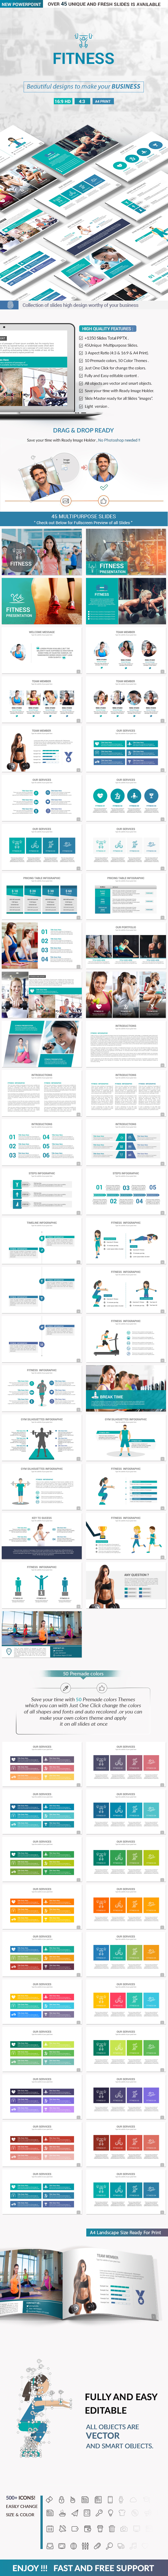 Fitness PowerPoint Presentation Template - Creative PowerPoint Templates